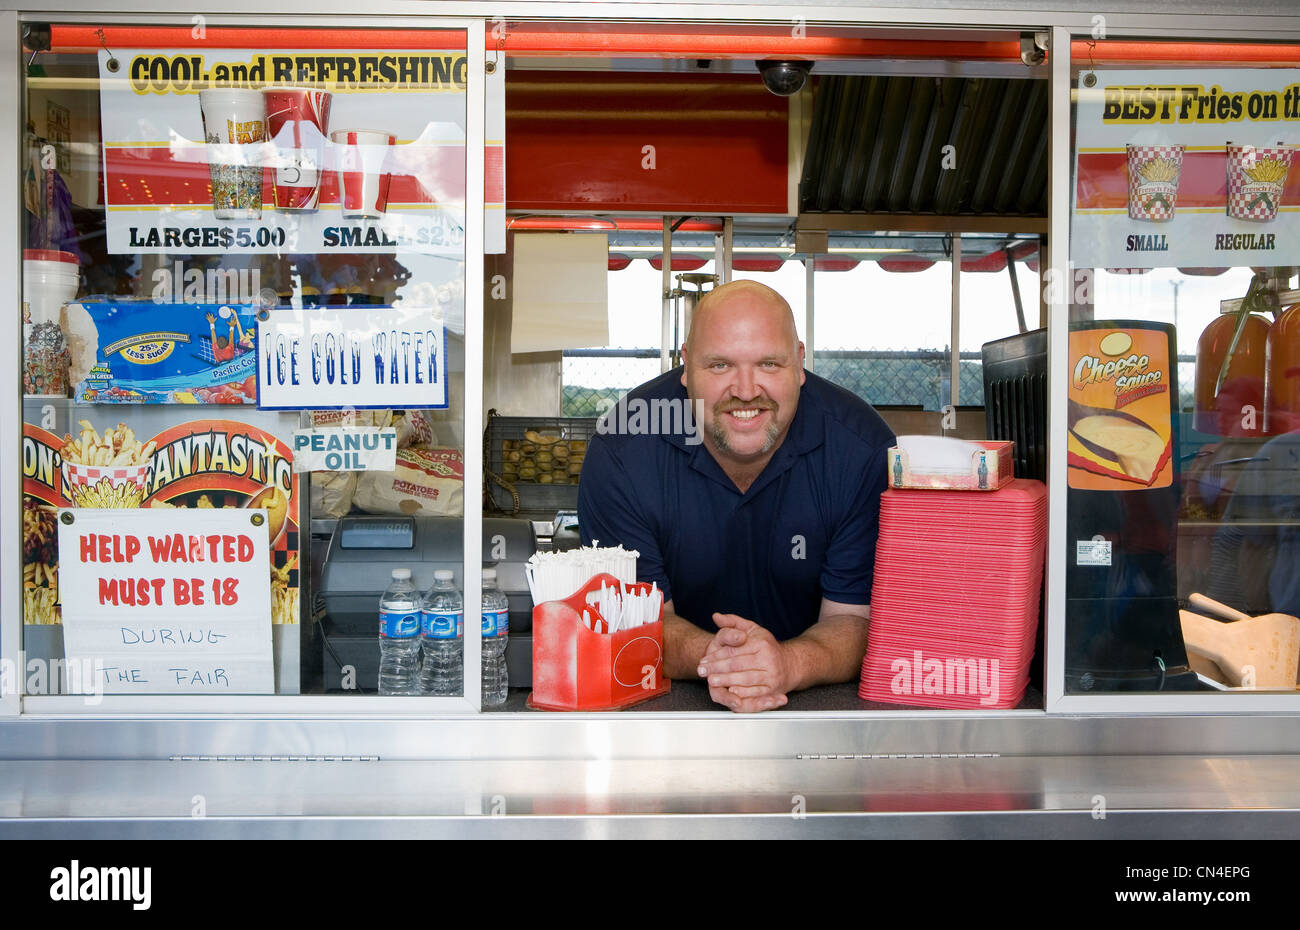 Owner of food stall at county fayre, smiling - Stock Image